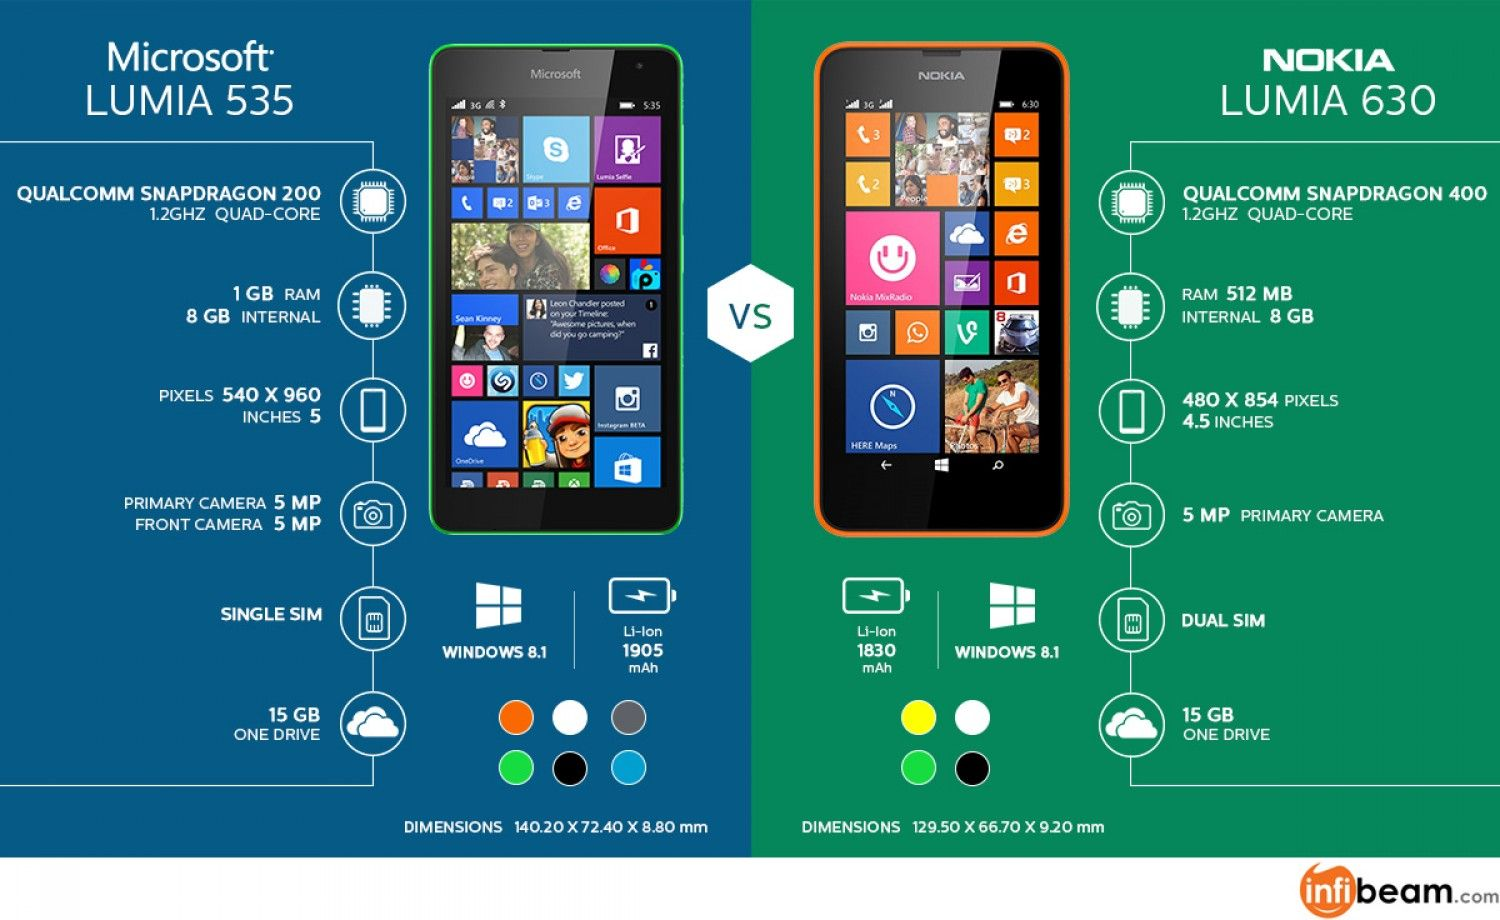 microsoft 535 | Microsoft Lumia 535 Vs Nokia Lumia 630: What